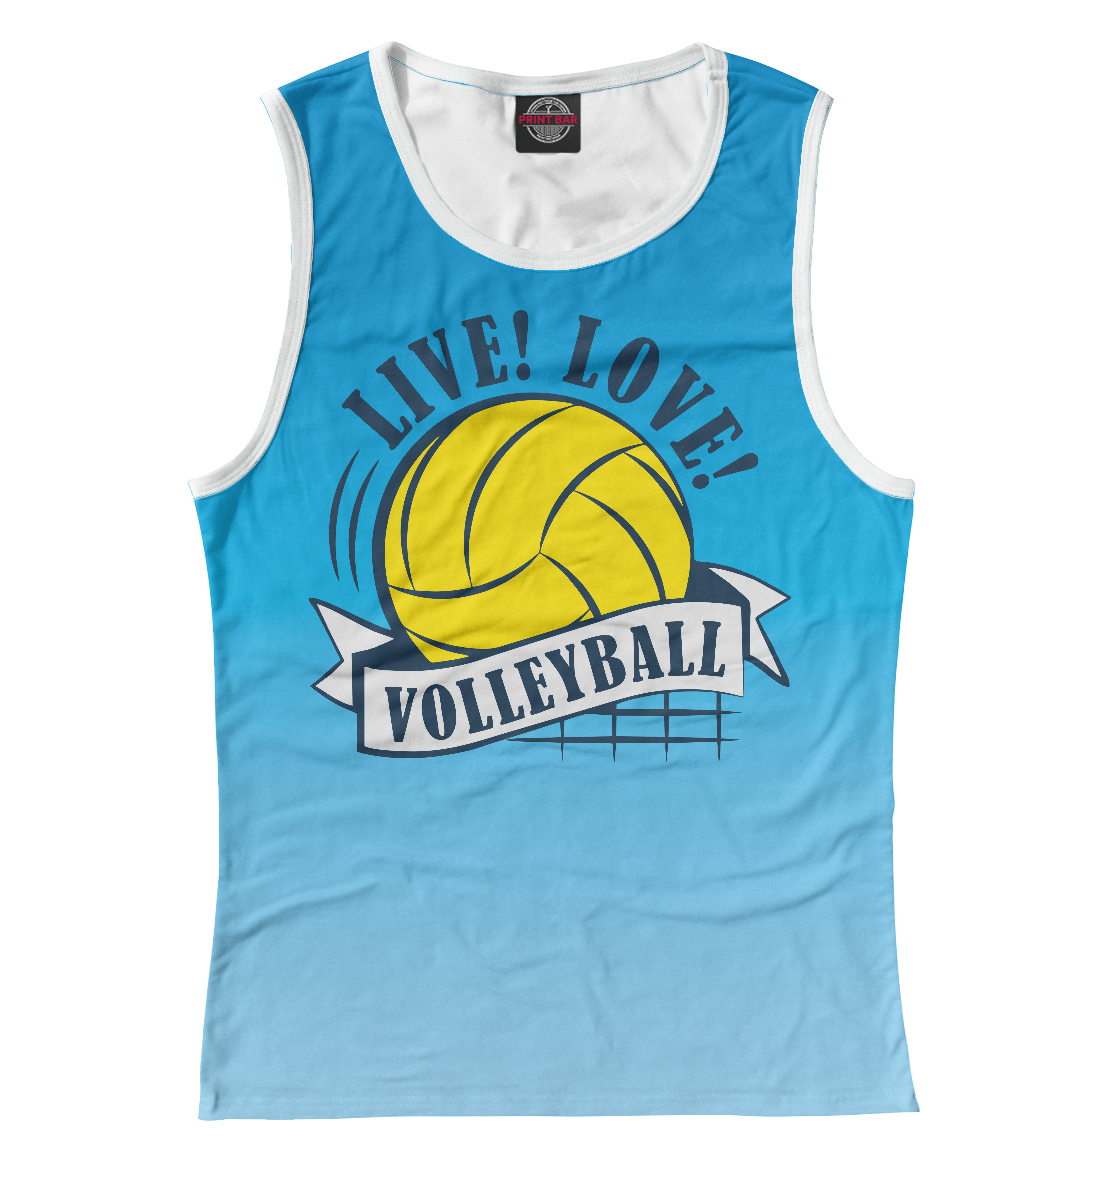 Live! Live! Volleyball!